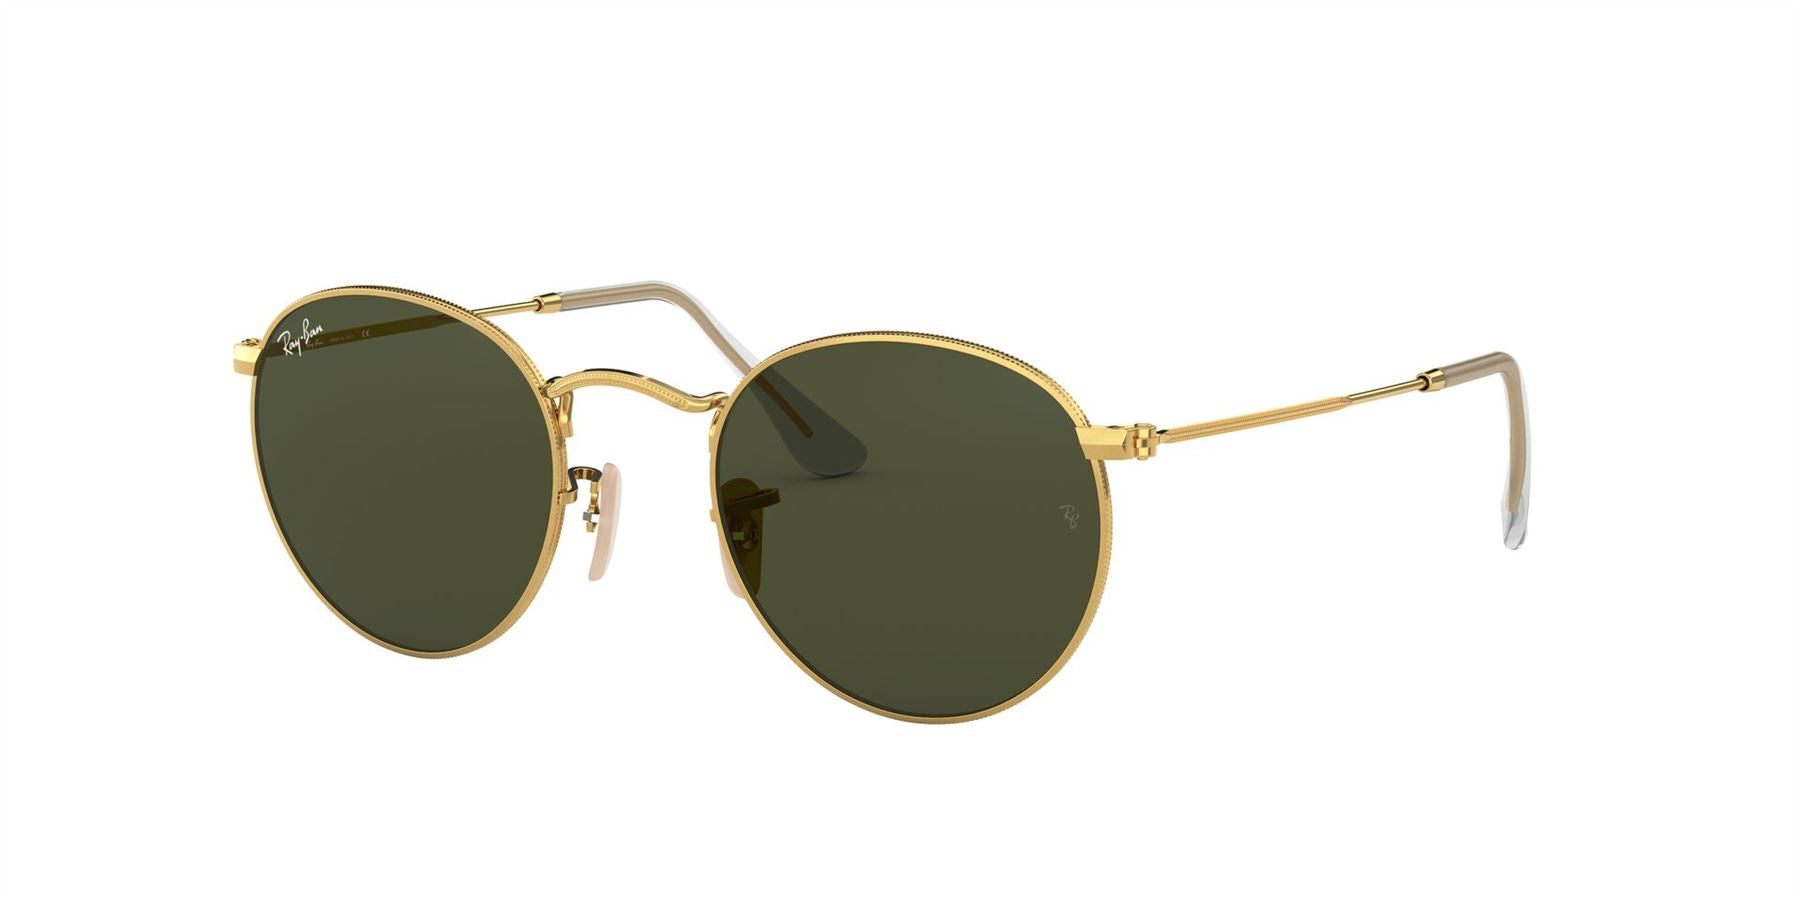 Ray-Ban Sunglasses Round Metal RB3447 001 Gold/Crystal Green - Size - 47